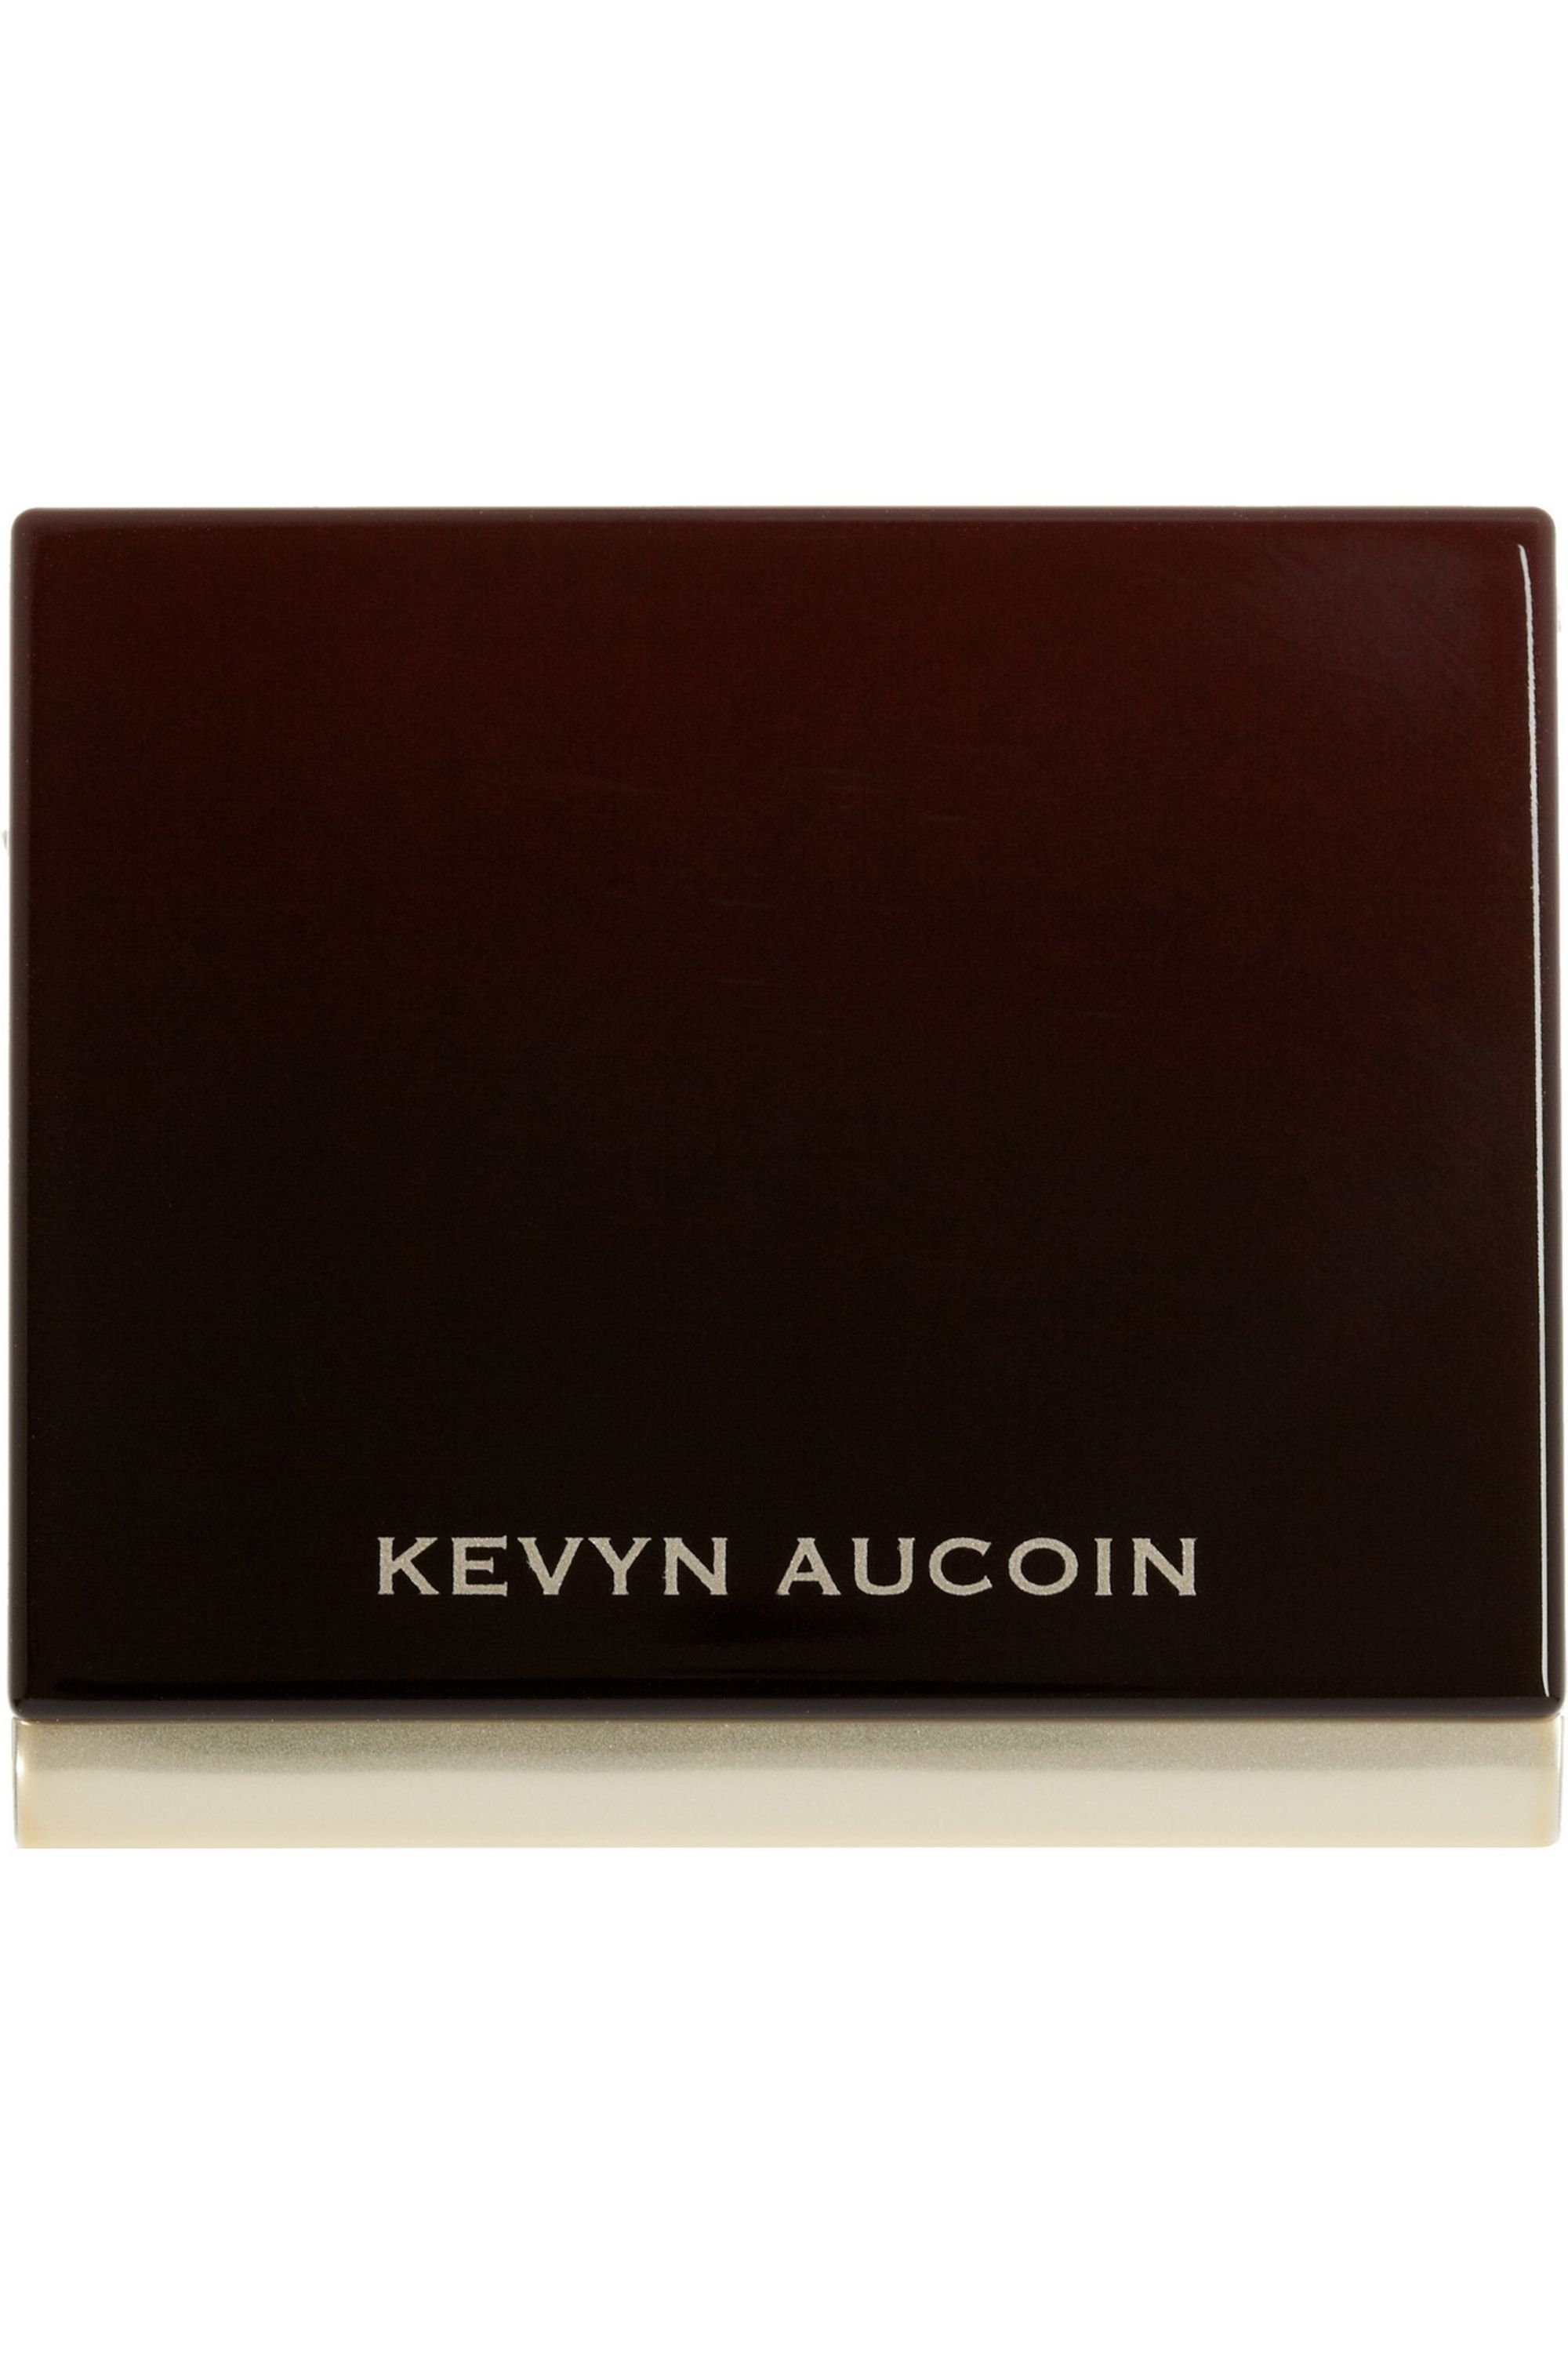 Kevyn Aucoin The Creamy Glow Duo - Tansoleil/ Bettina